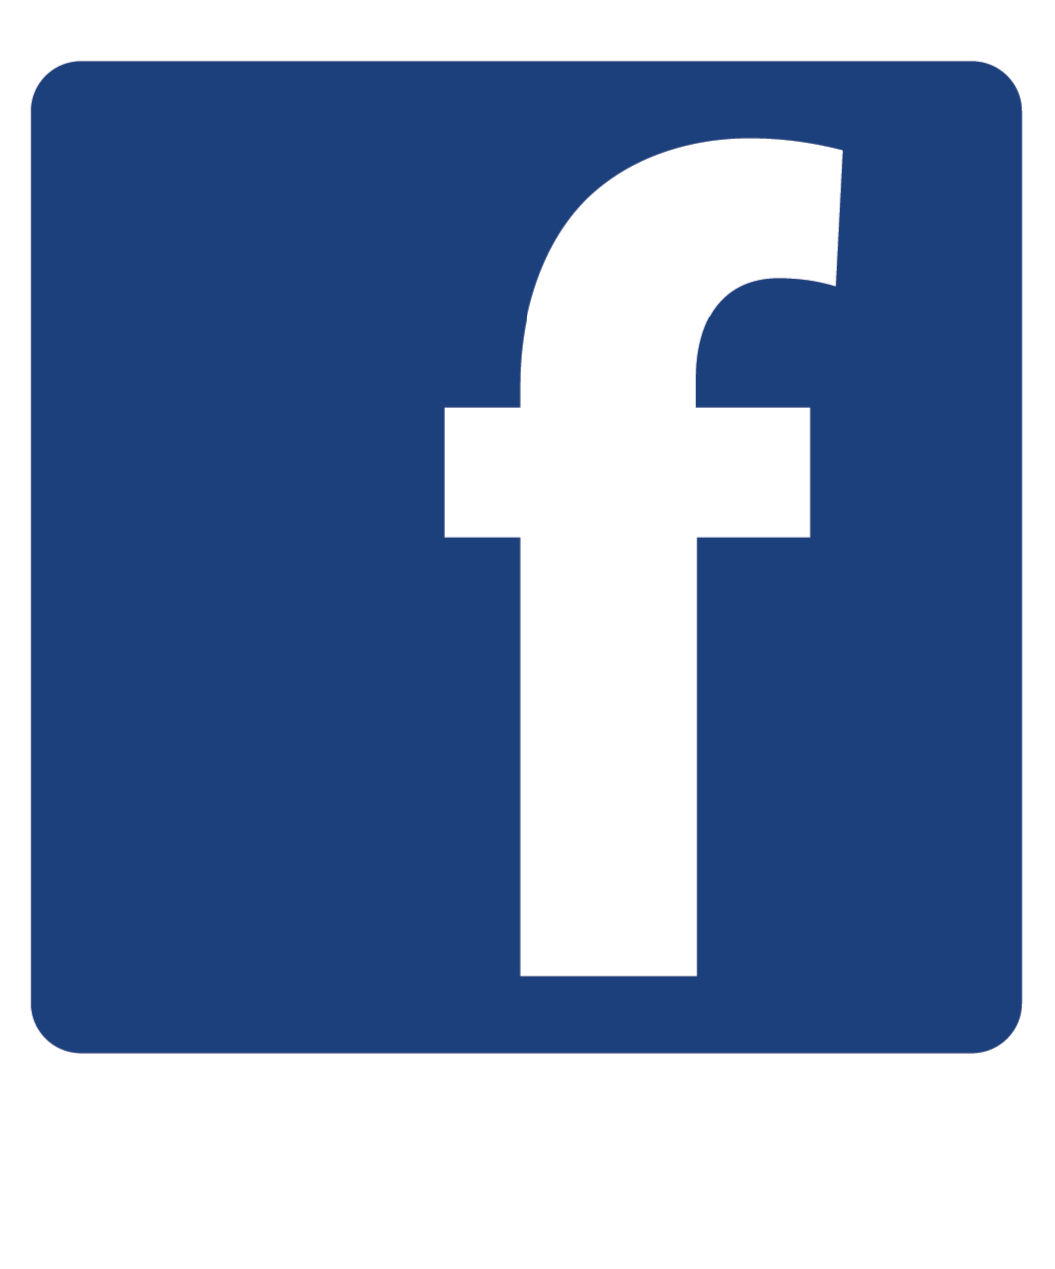 Facebook, Inc. Logo Computer Icons Like button.